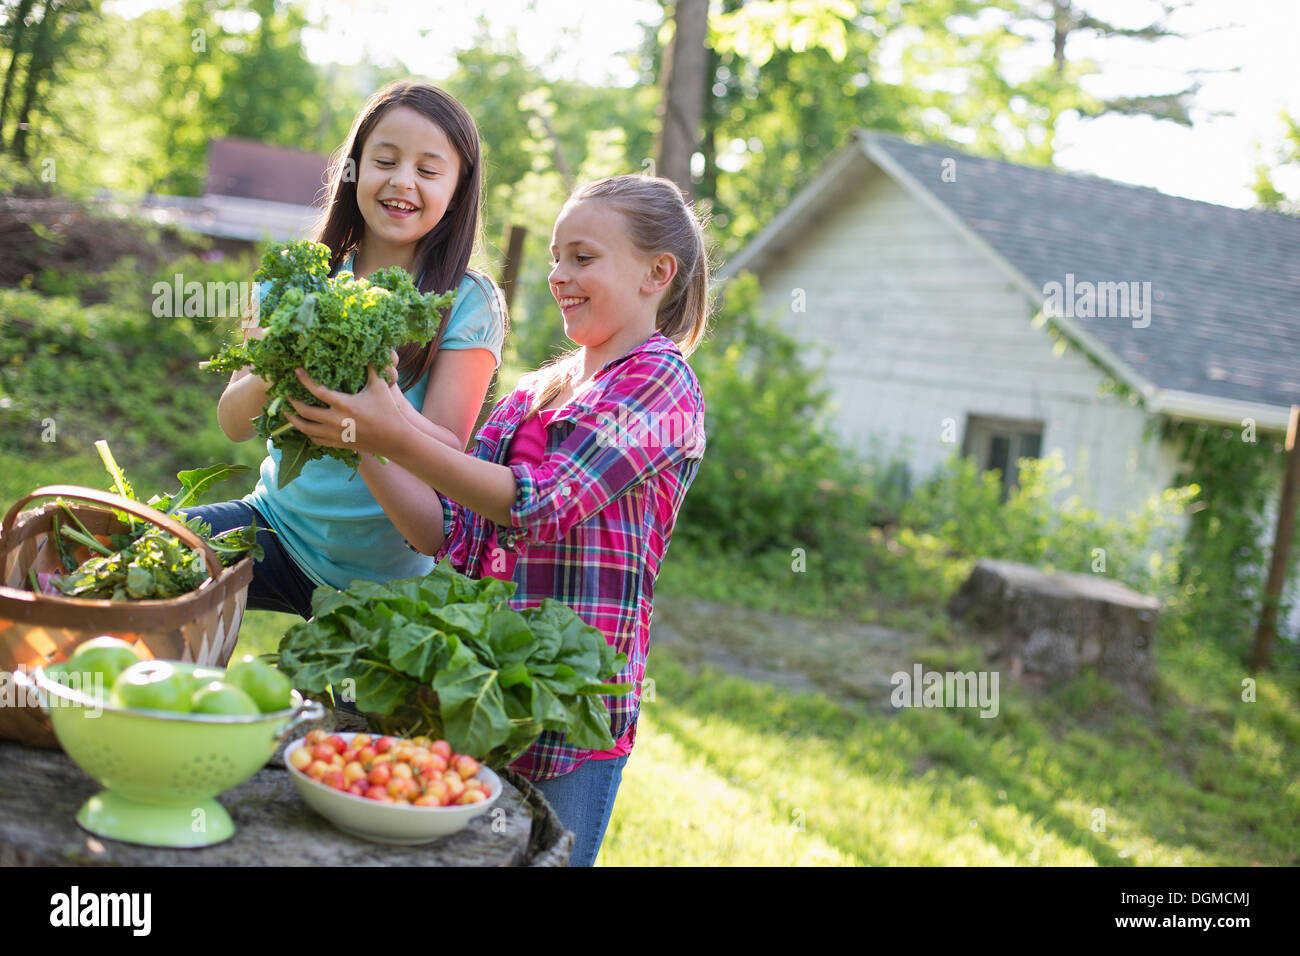 Organic farm. Summer party. Two young girls preparing salads. - Stock Image